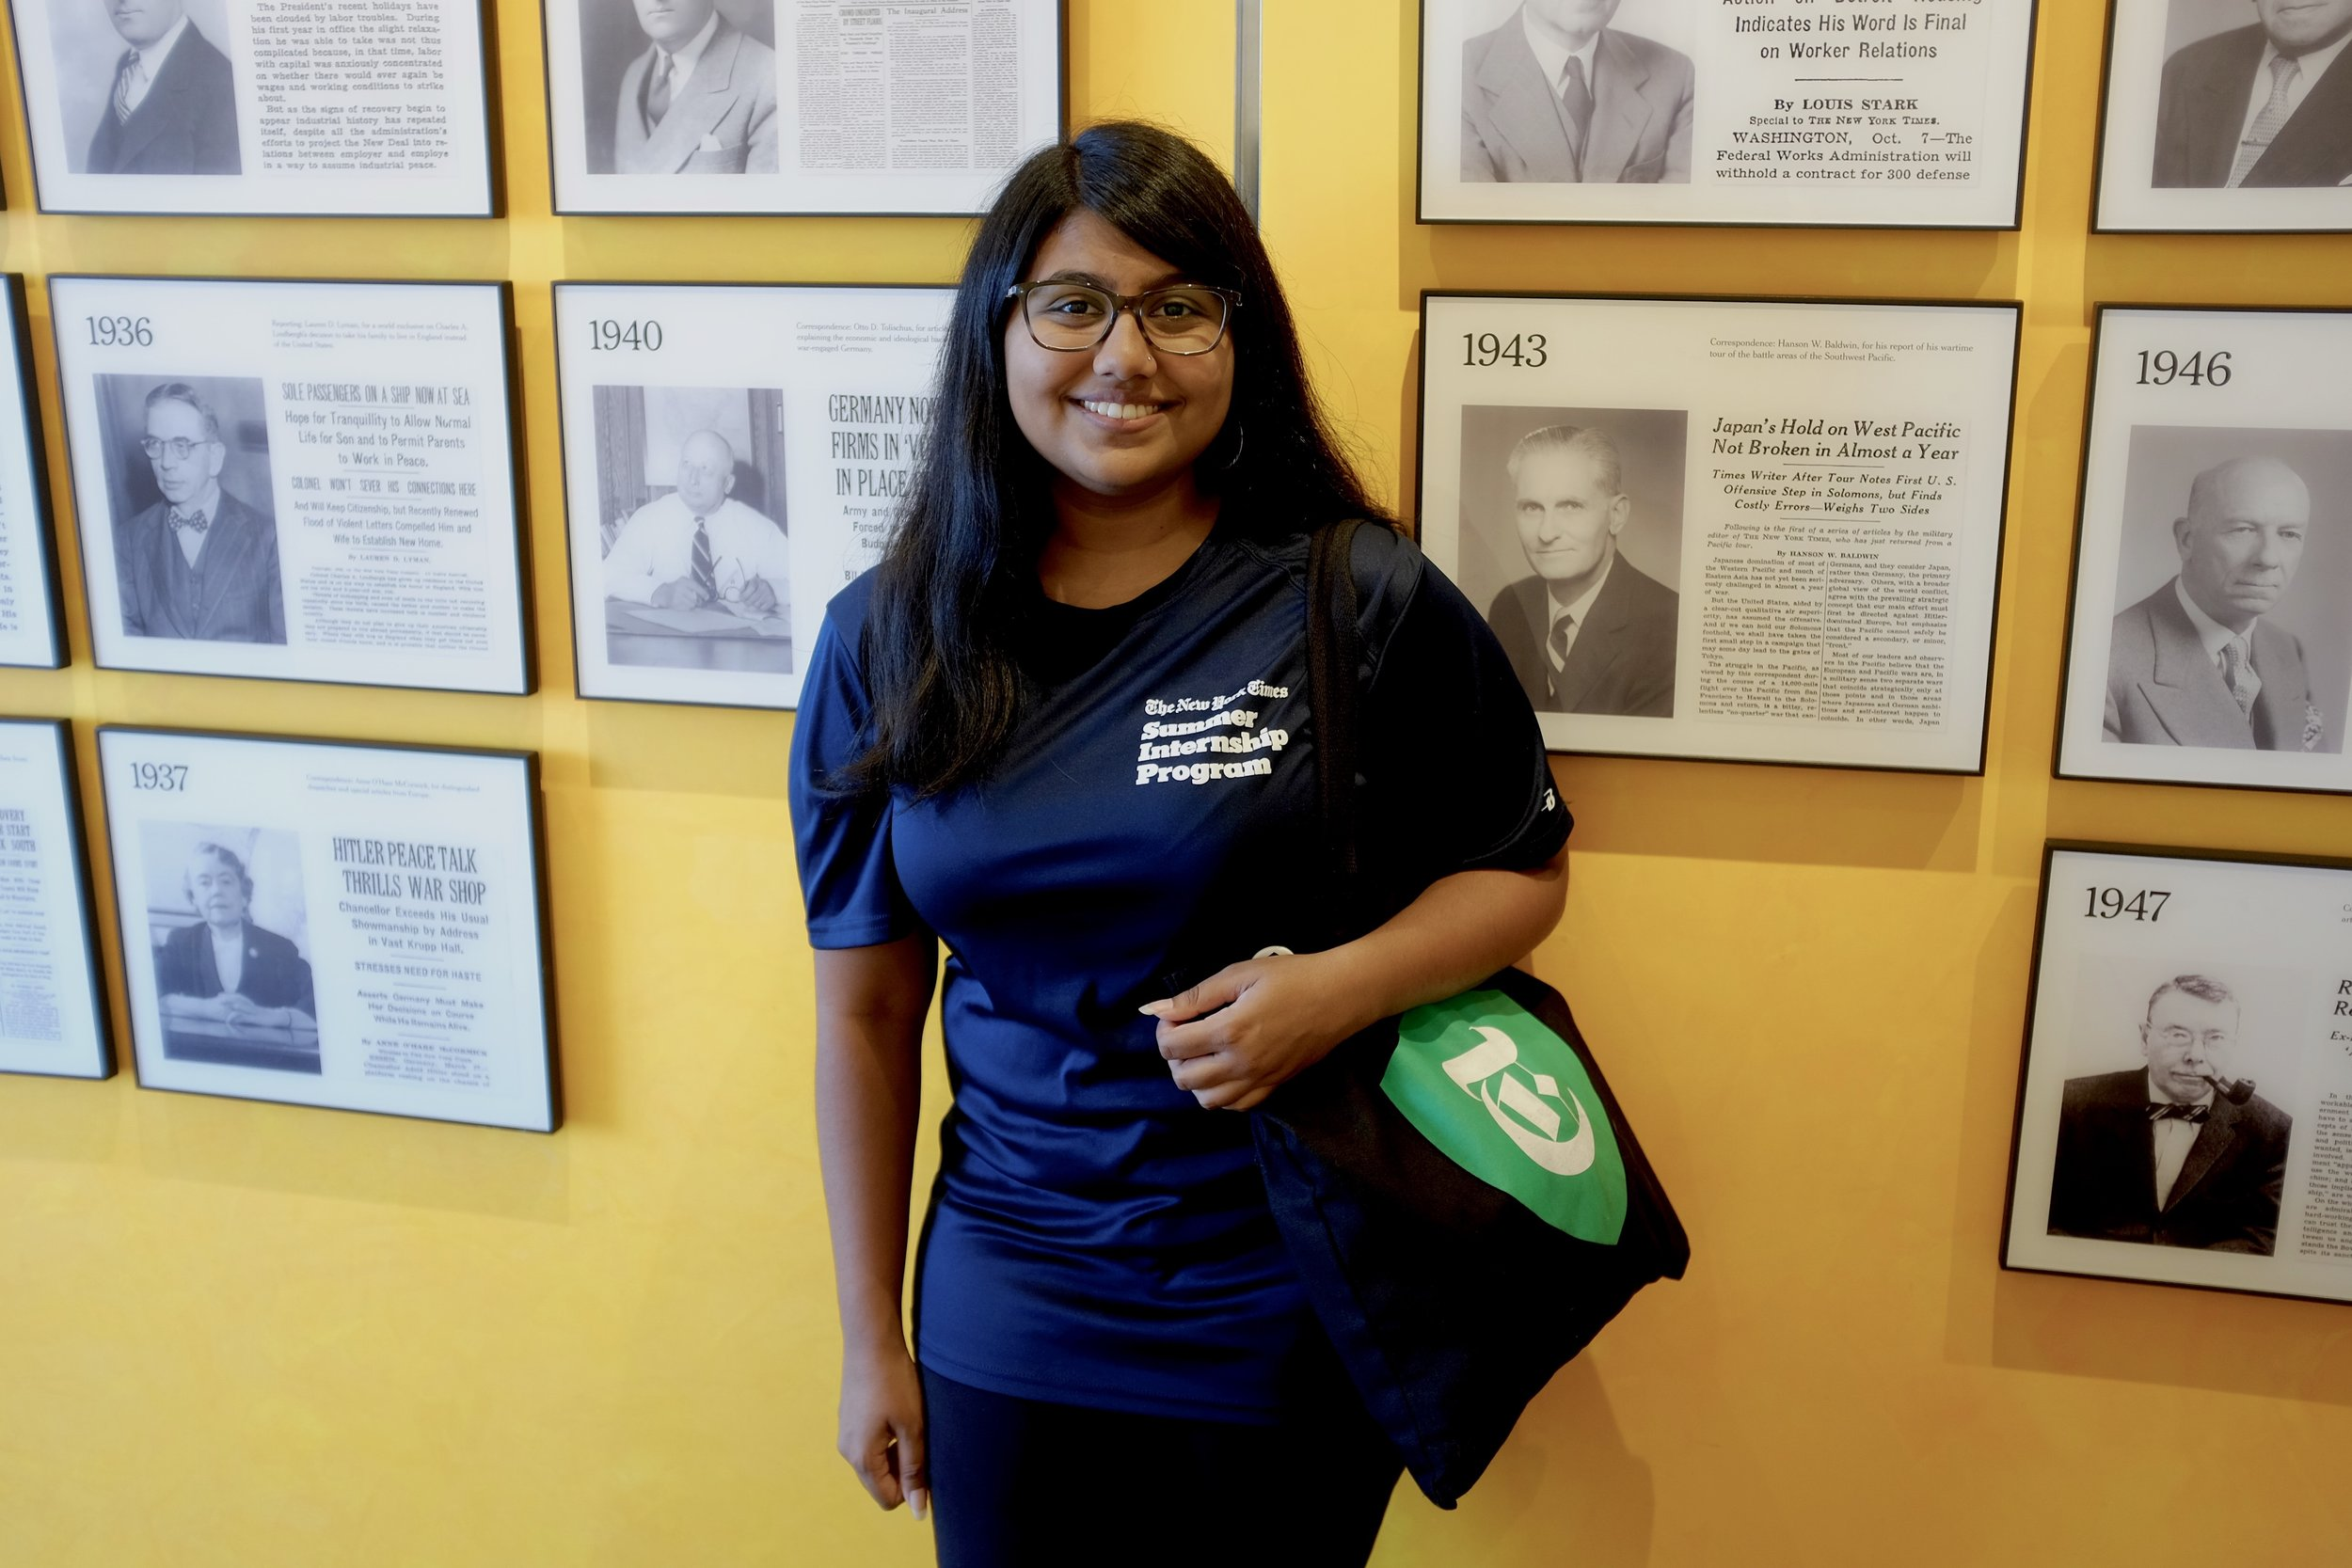 Yulini Persaud is now an Information Security Intern at the New York Times